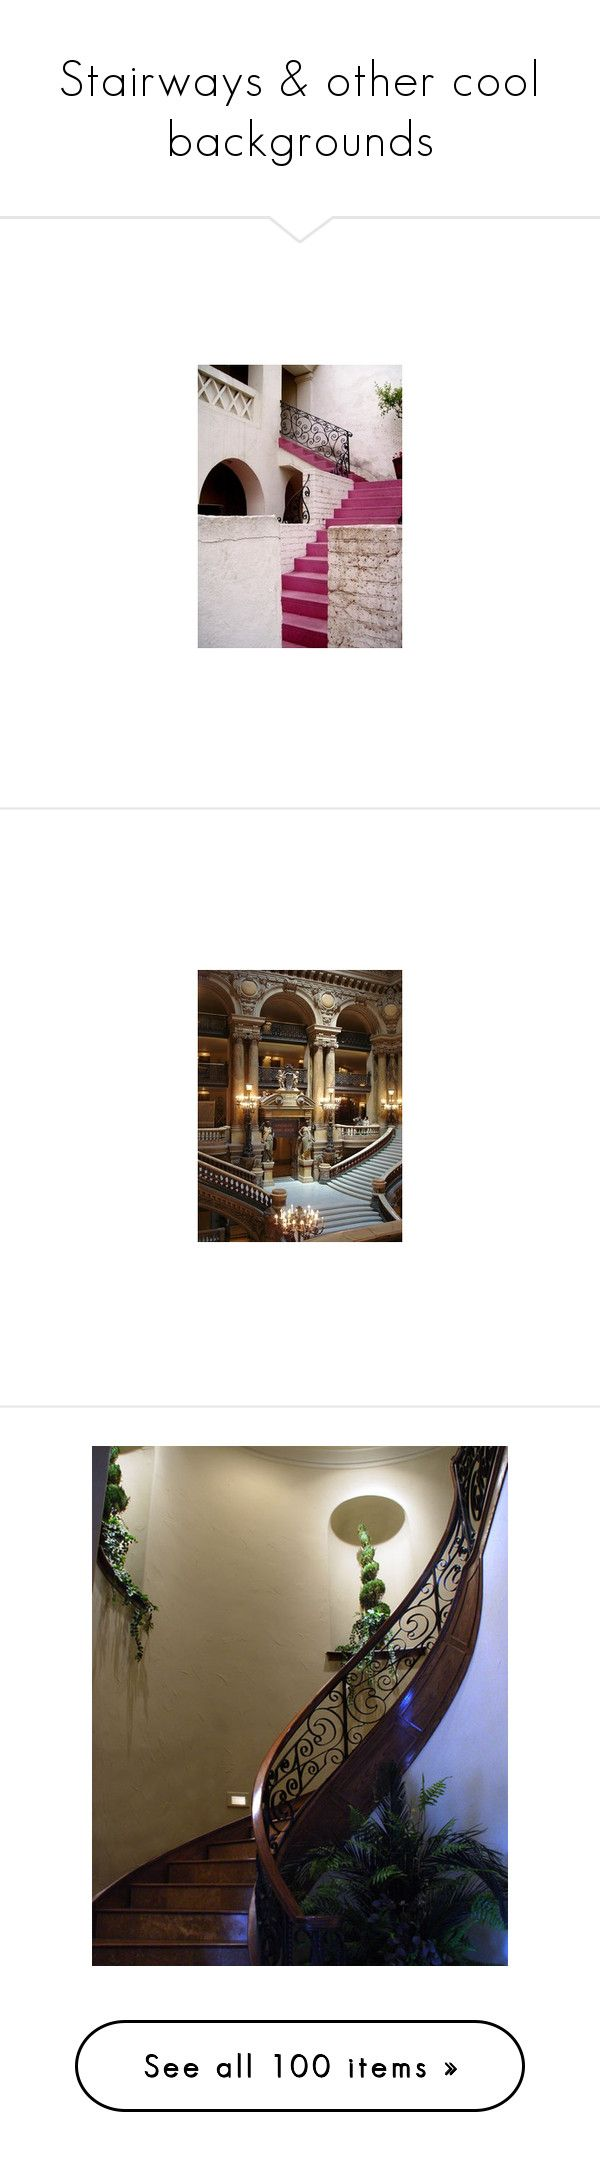 """""""Stairways & other cool backgrounds"""" by kristie-miles ❤ liked on Polyvore featuring rooms, pictures, backgrounds, room, image, photos, stairs, castle, exterior and home"""